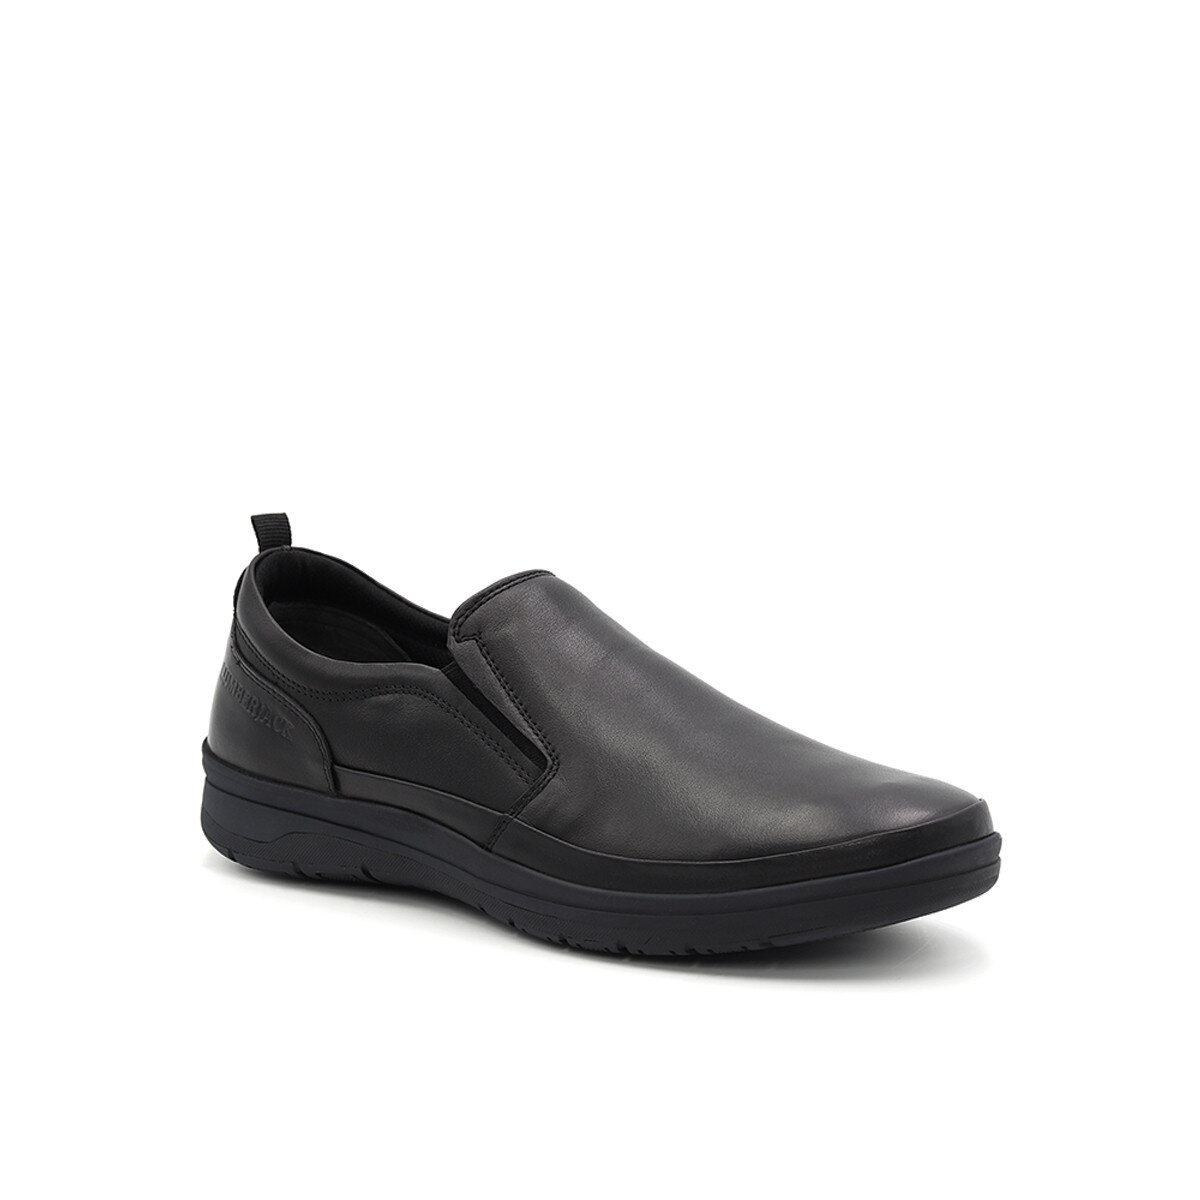 JOELE Casual shoes Man